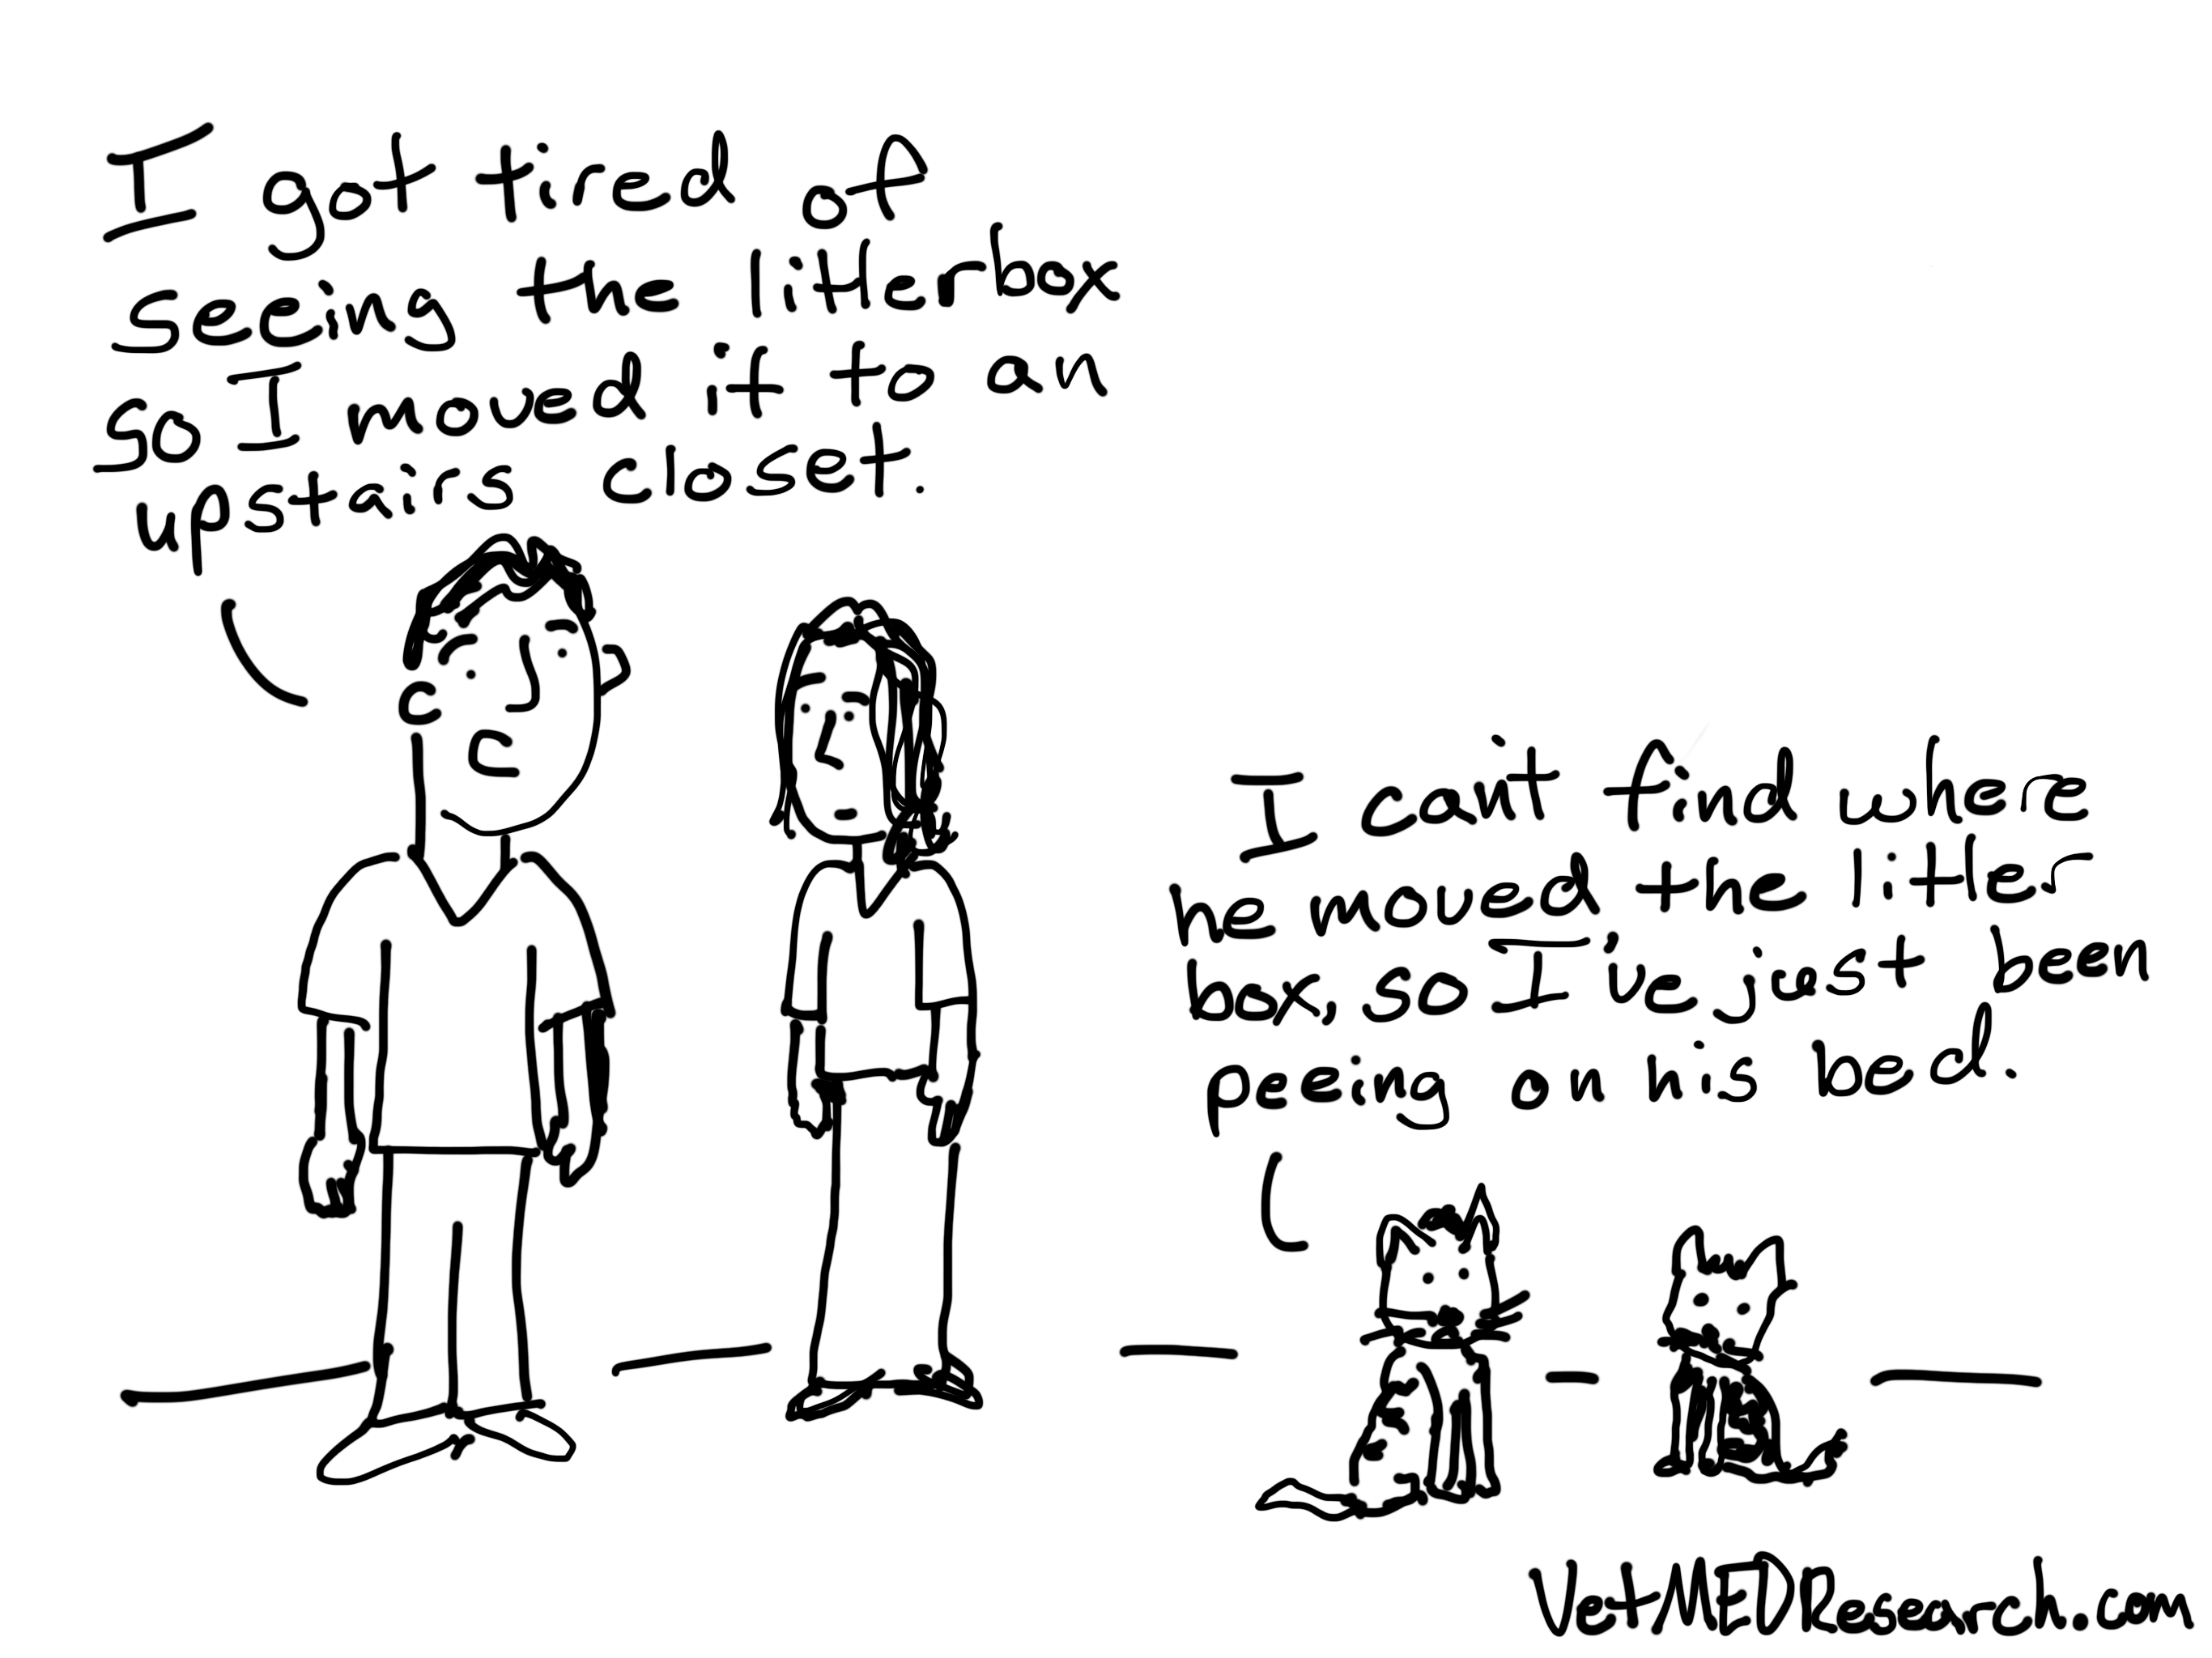 VetMEDResearch Litterbox Cartoon